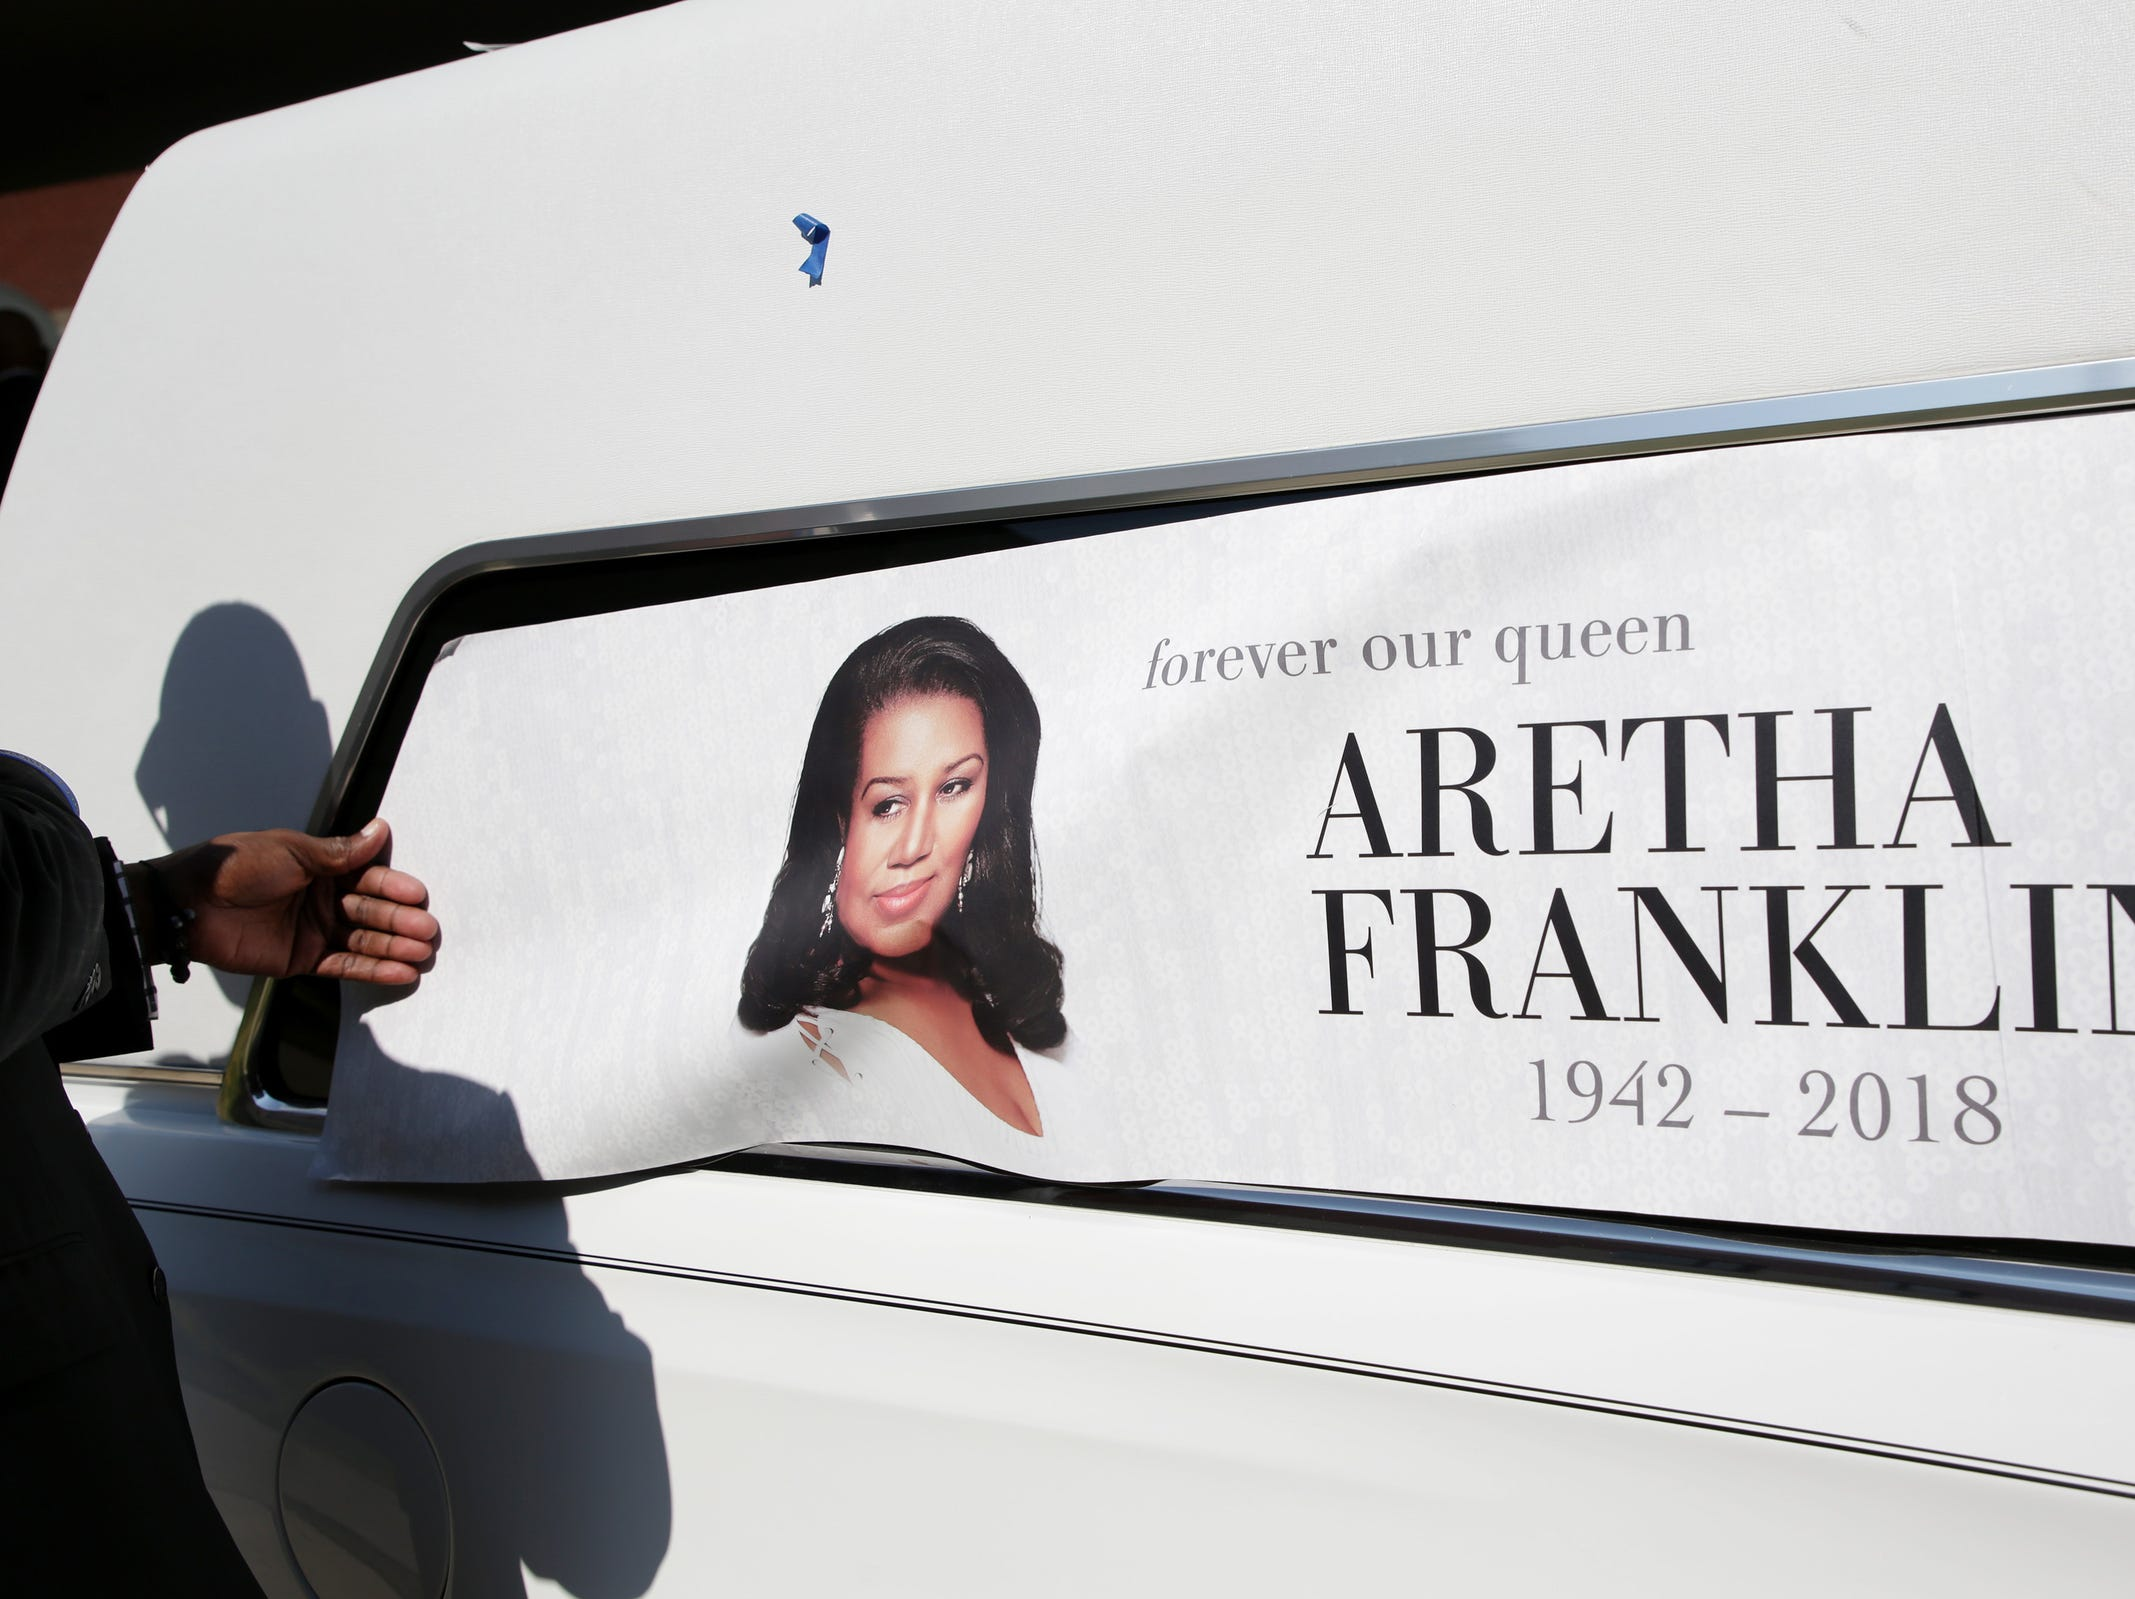 Leon Jones helps applying a removable vinyl in memory of Aretha Franklin on one of the Swanson Funeral Home vehicle during her funeral at Greater Grace Temple on Friday, August 31, 2018.